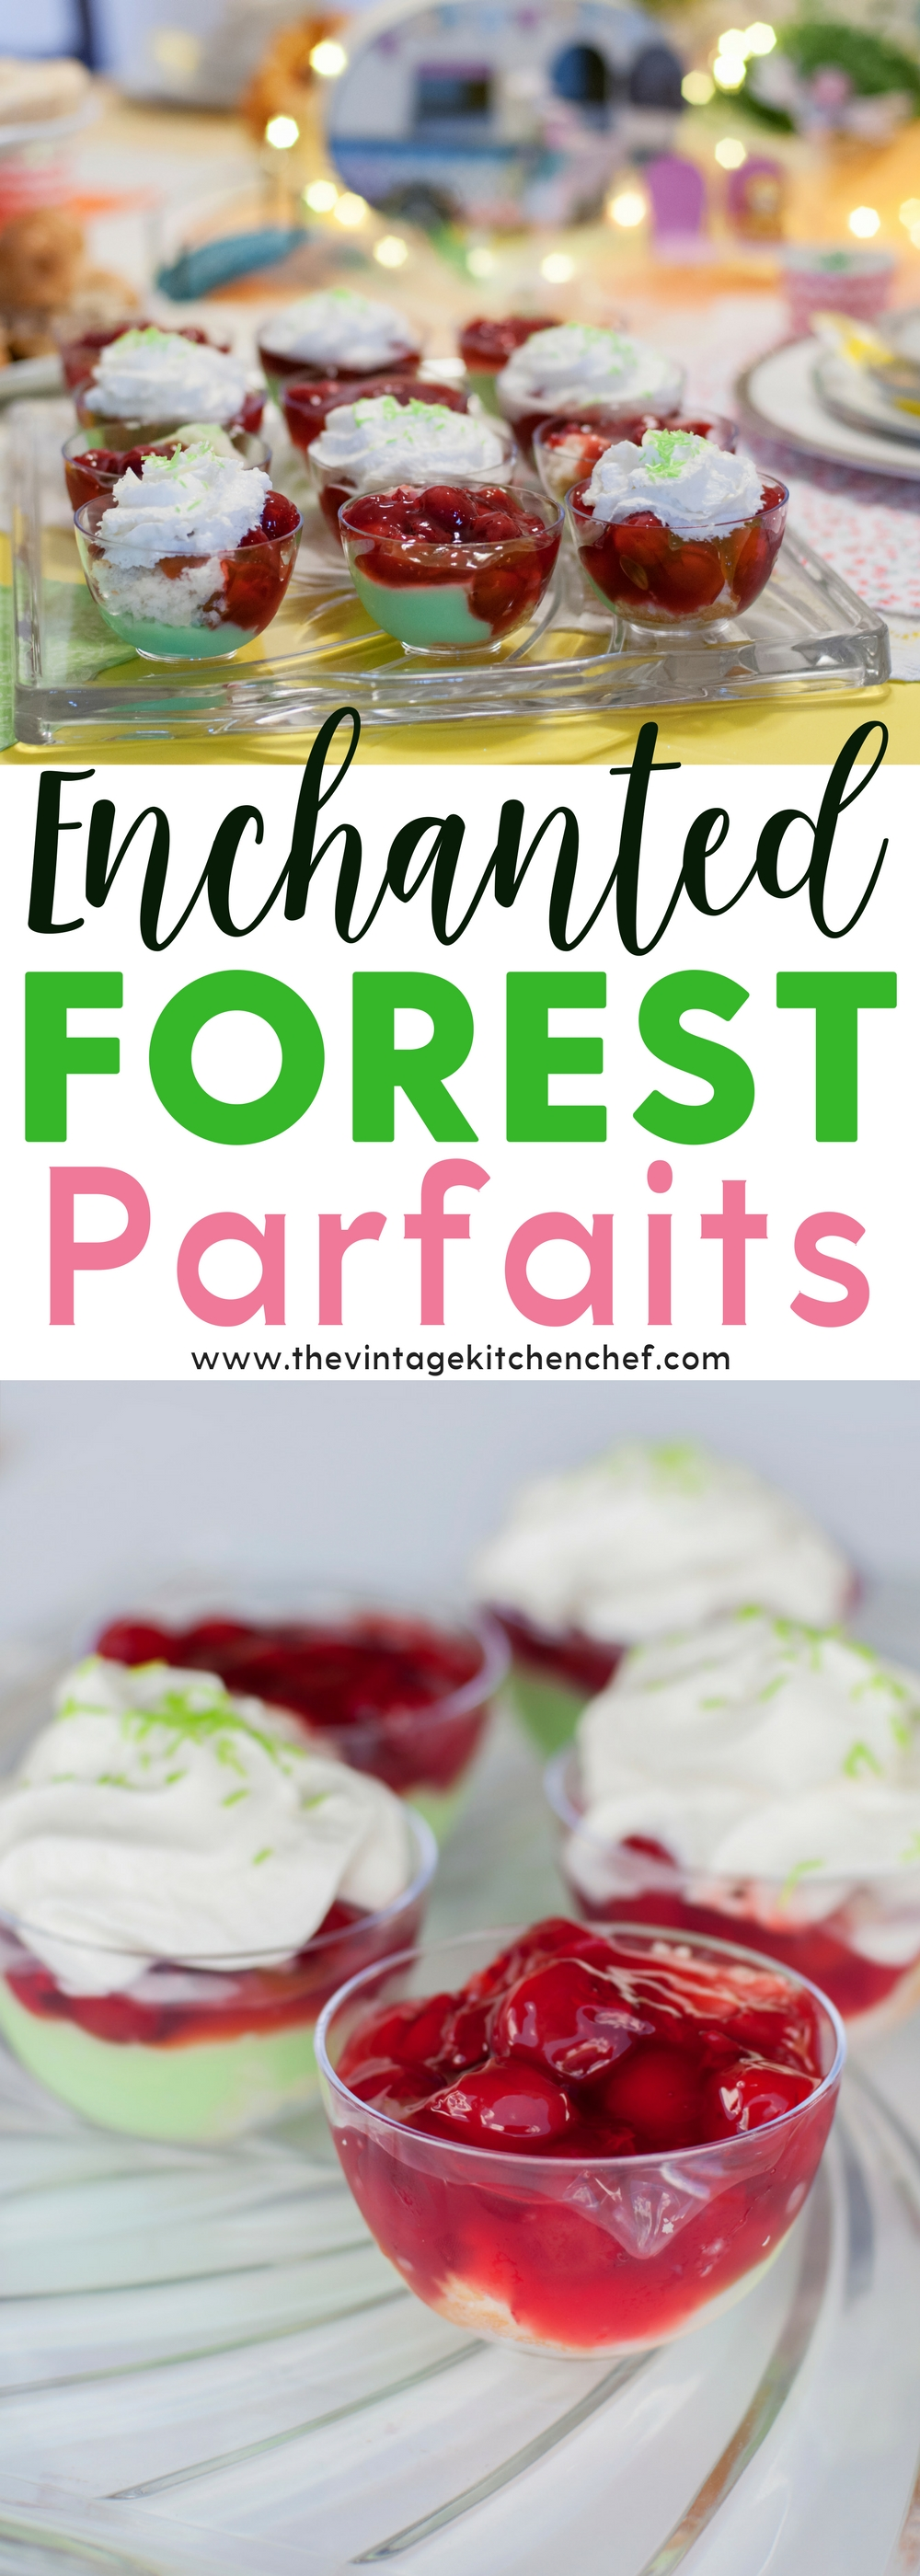 Tiny Enchanted Forest Parfaits are not only fanciful and delicious but are so easy, too! Great for a tea party or any event where you need a mini dessert.